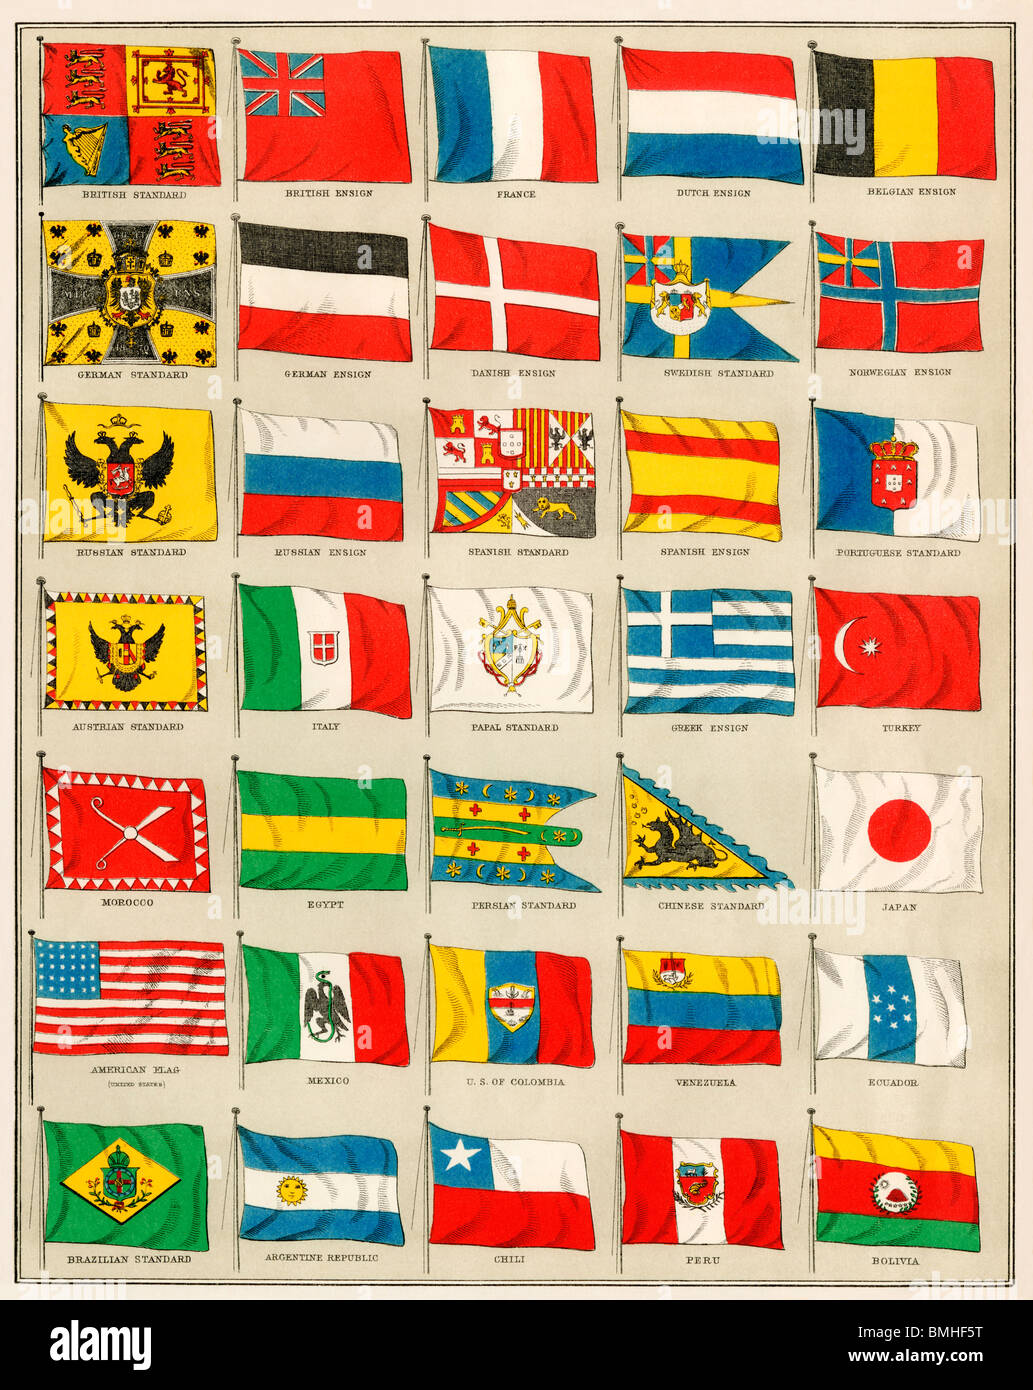 Old Fashioned Countries